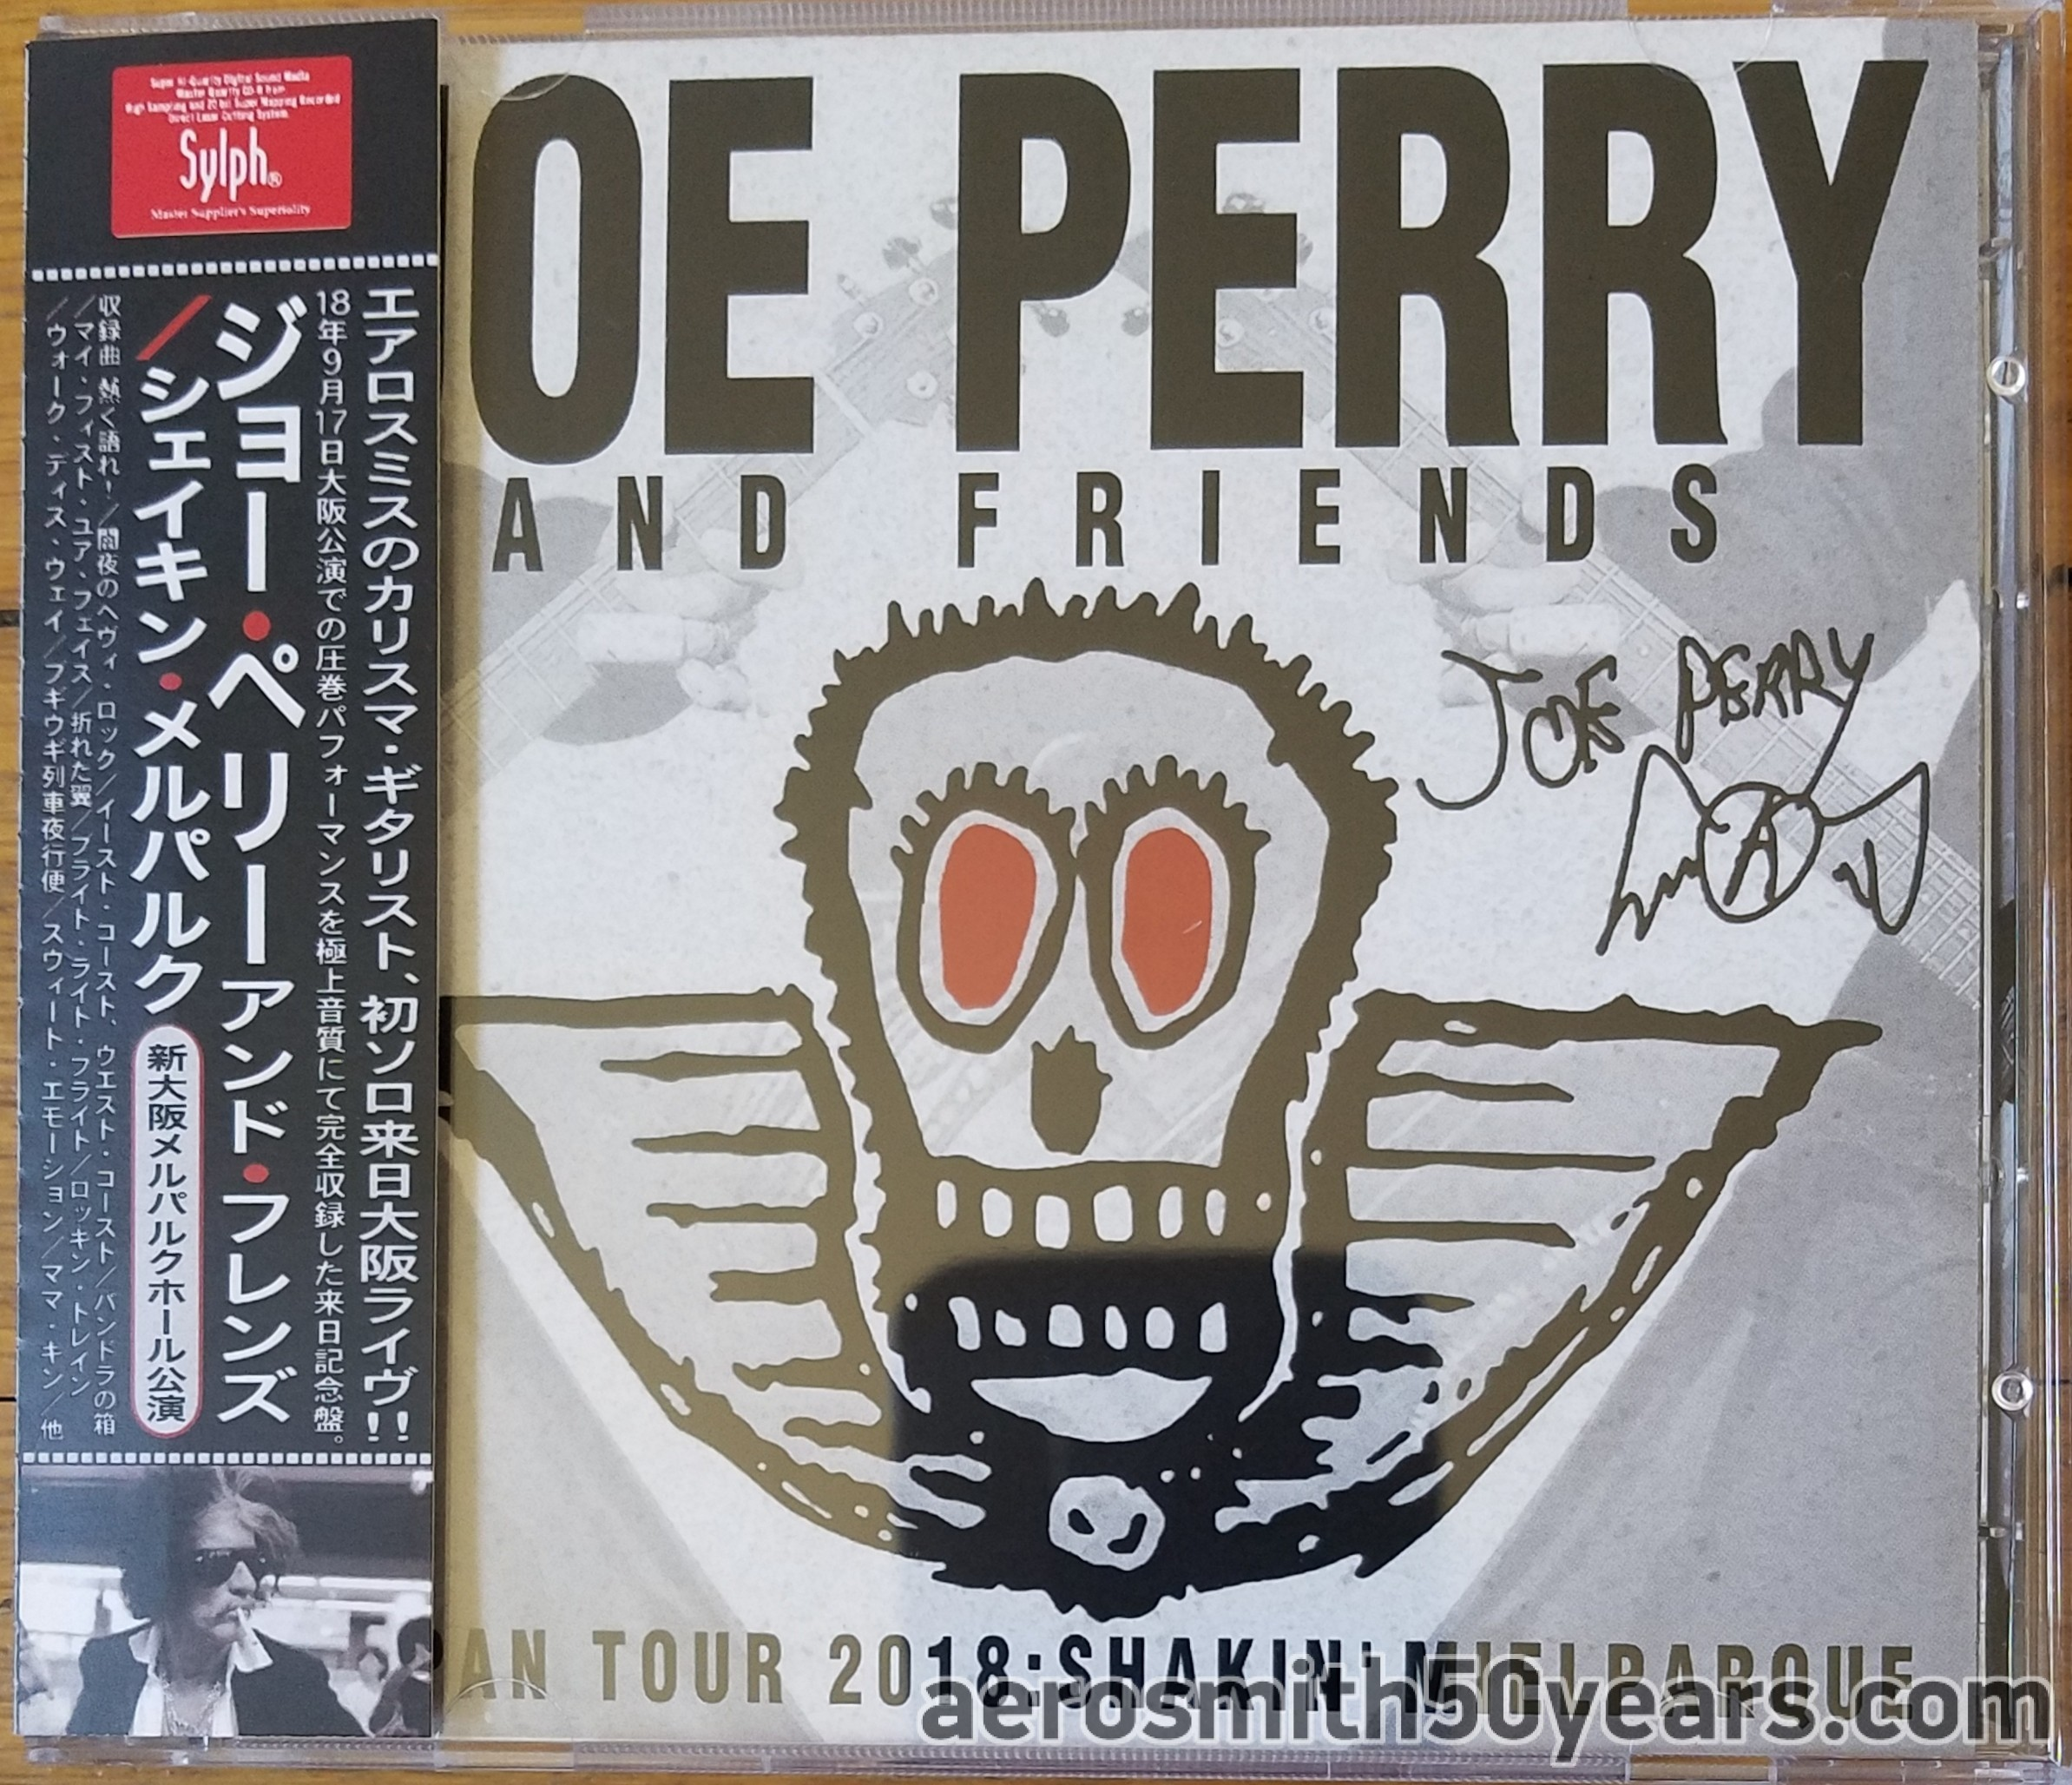 Joe Perry And Friends- September 17th, 2018 Osaka, Japan (Unofficial) 2 CD